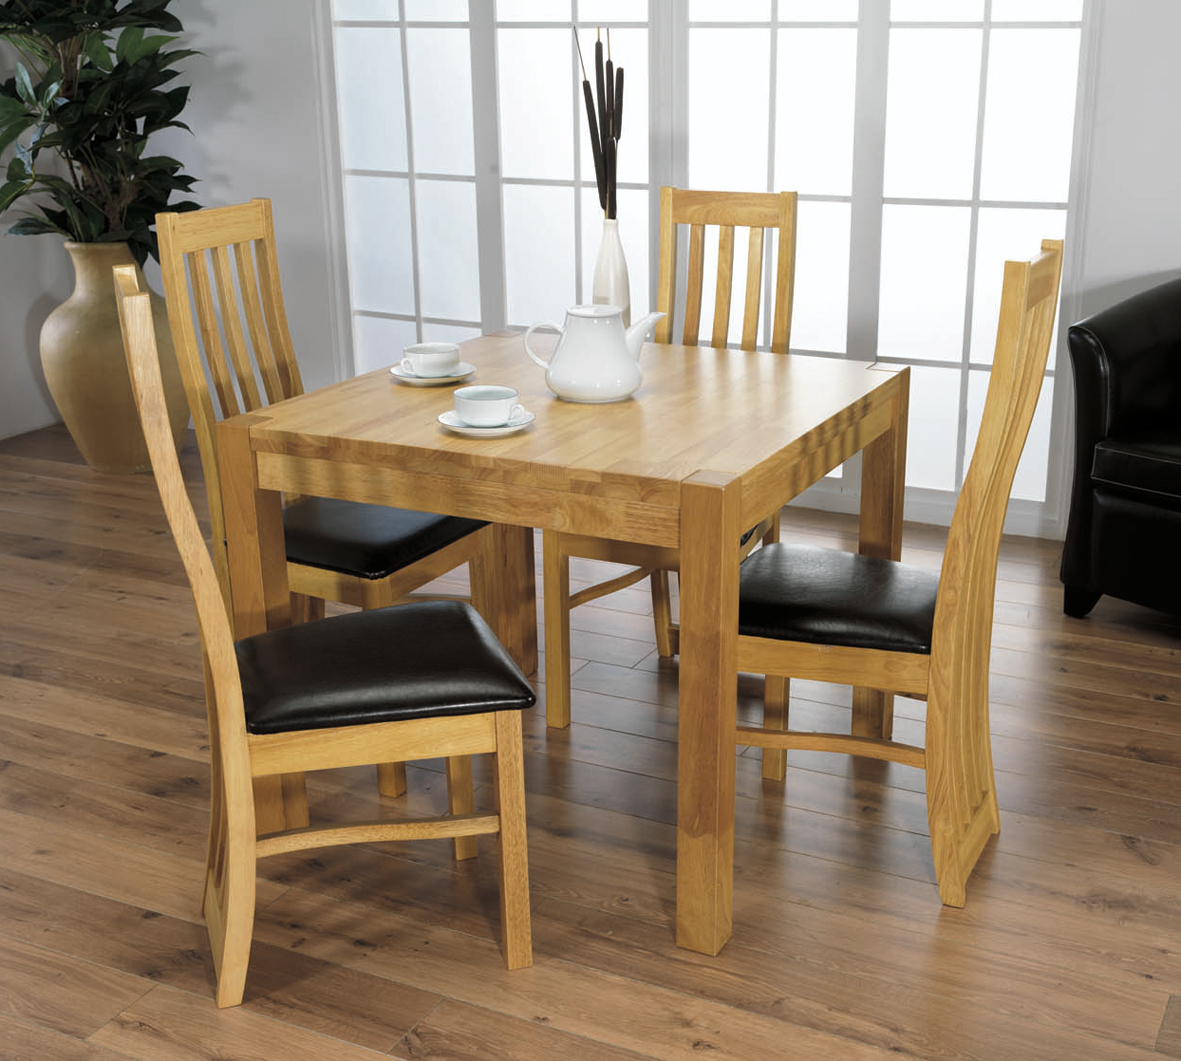 Kitchen table for small spaces photo - 2